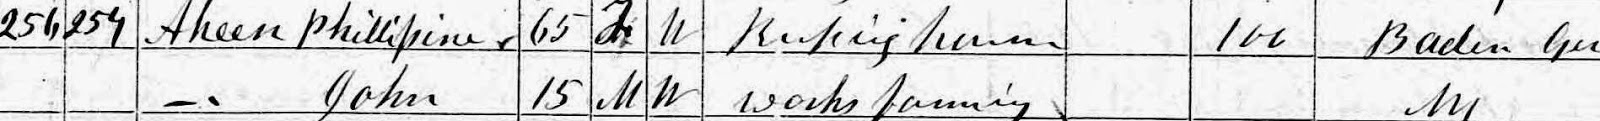 Climbing My Family Tree: 1870 Census: Phillipine & John Philip Henn